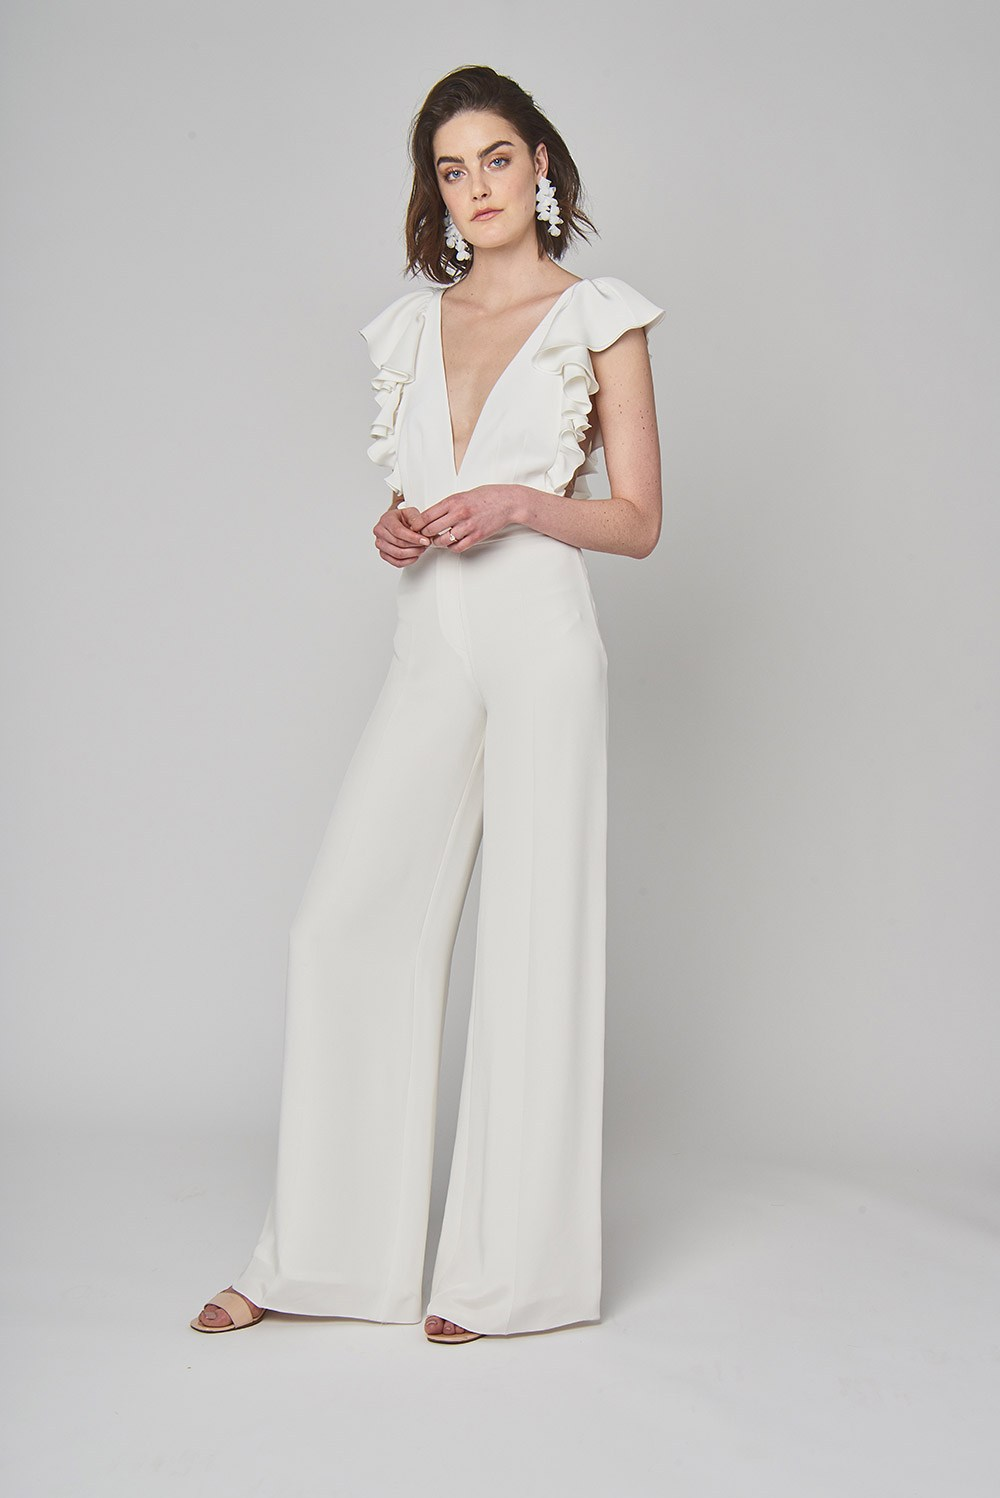 Alexandra_Grecco_2019_Bridal_Collection_10_Lucy-Bodysuit-Front.jpg